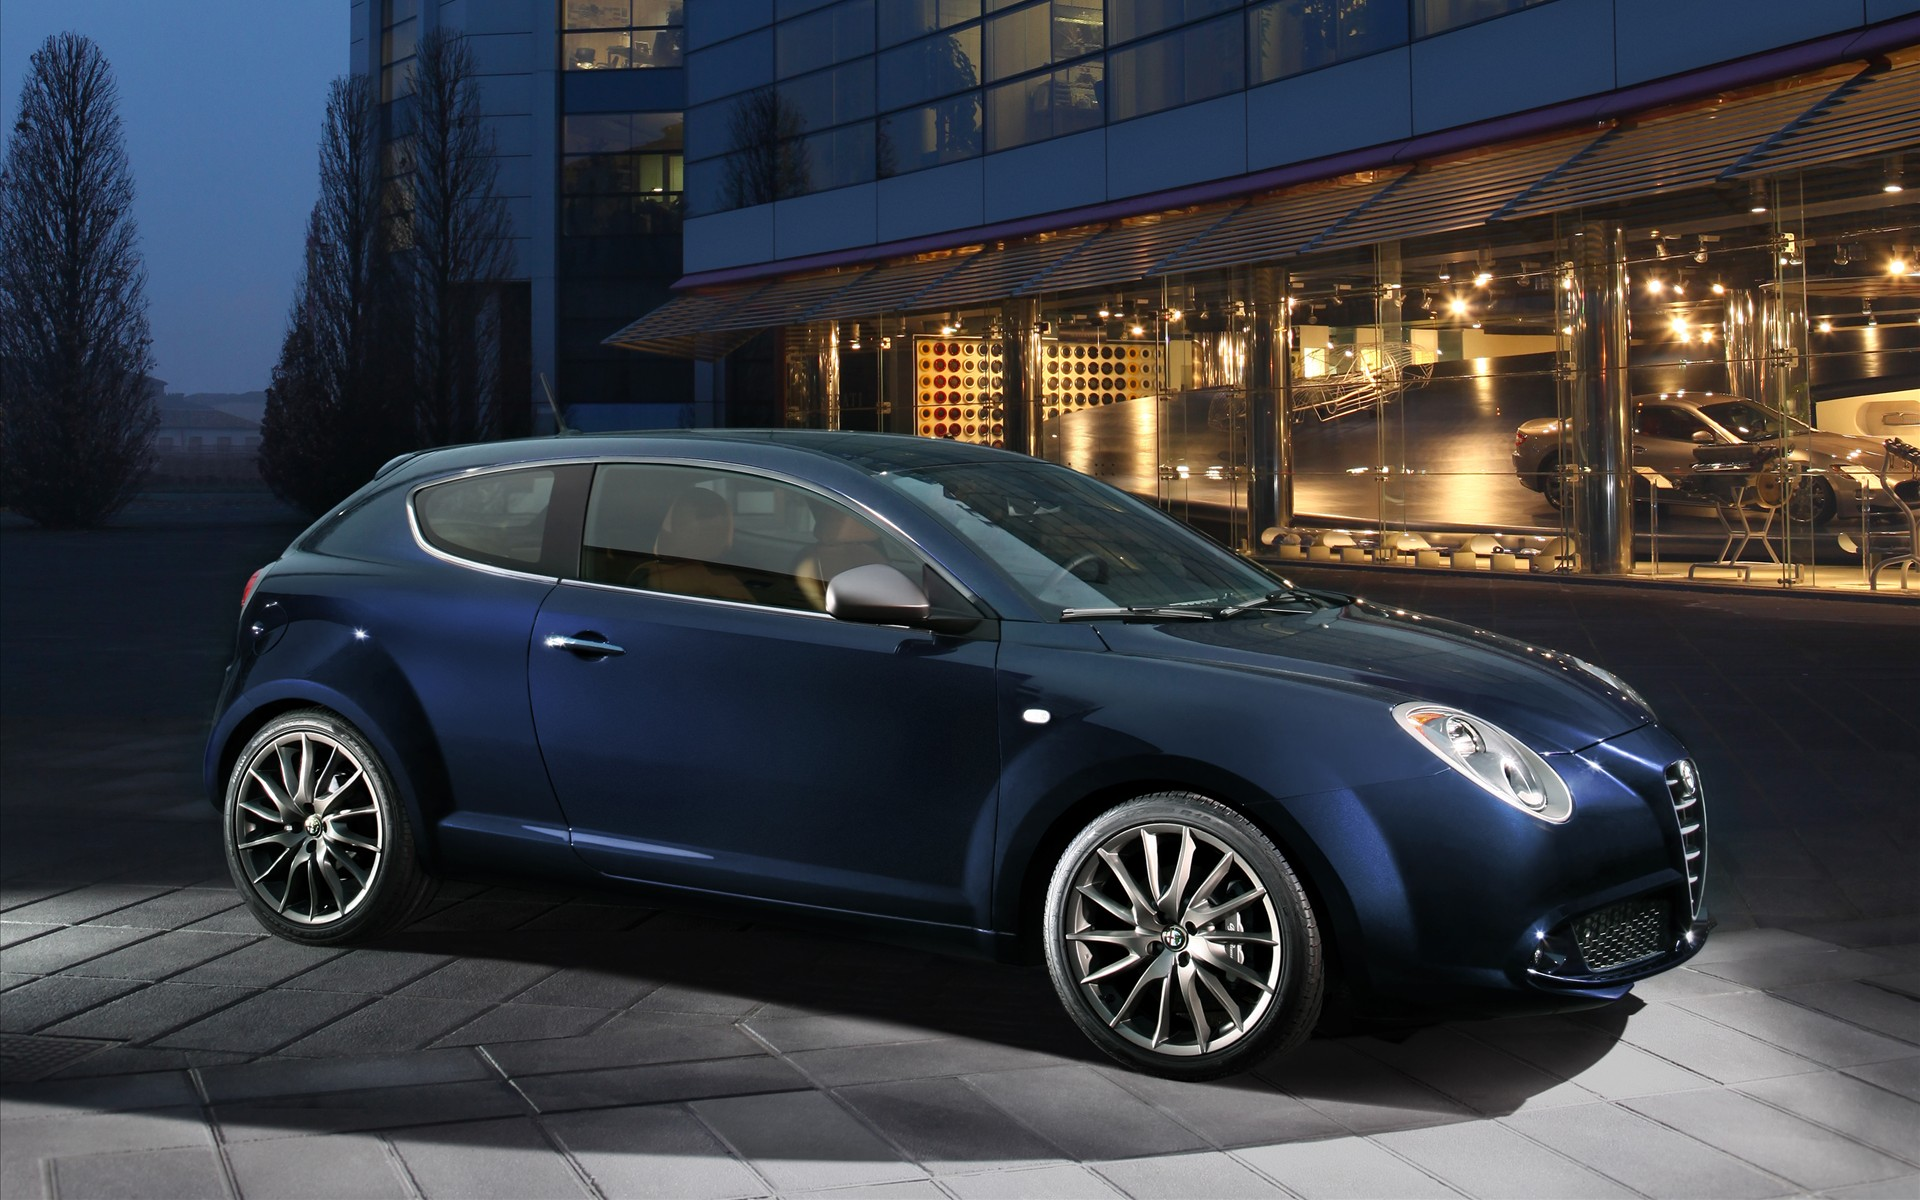 alfa romeo mito wallpaper 1080p